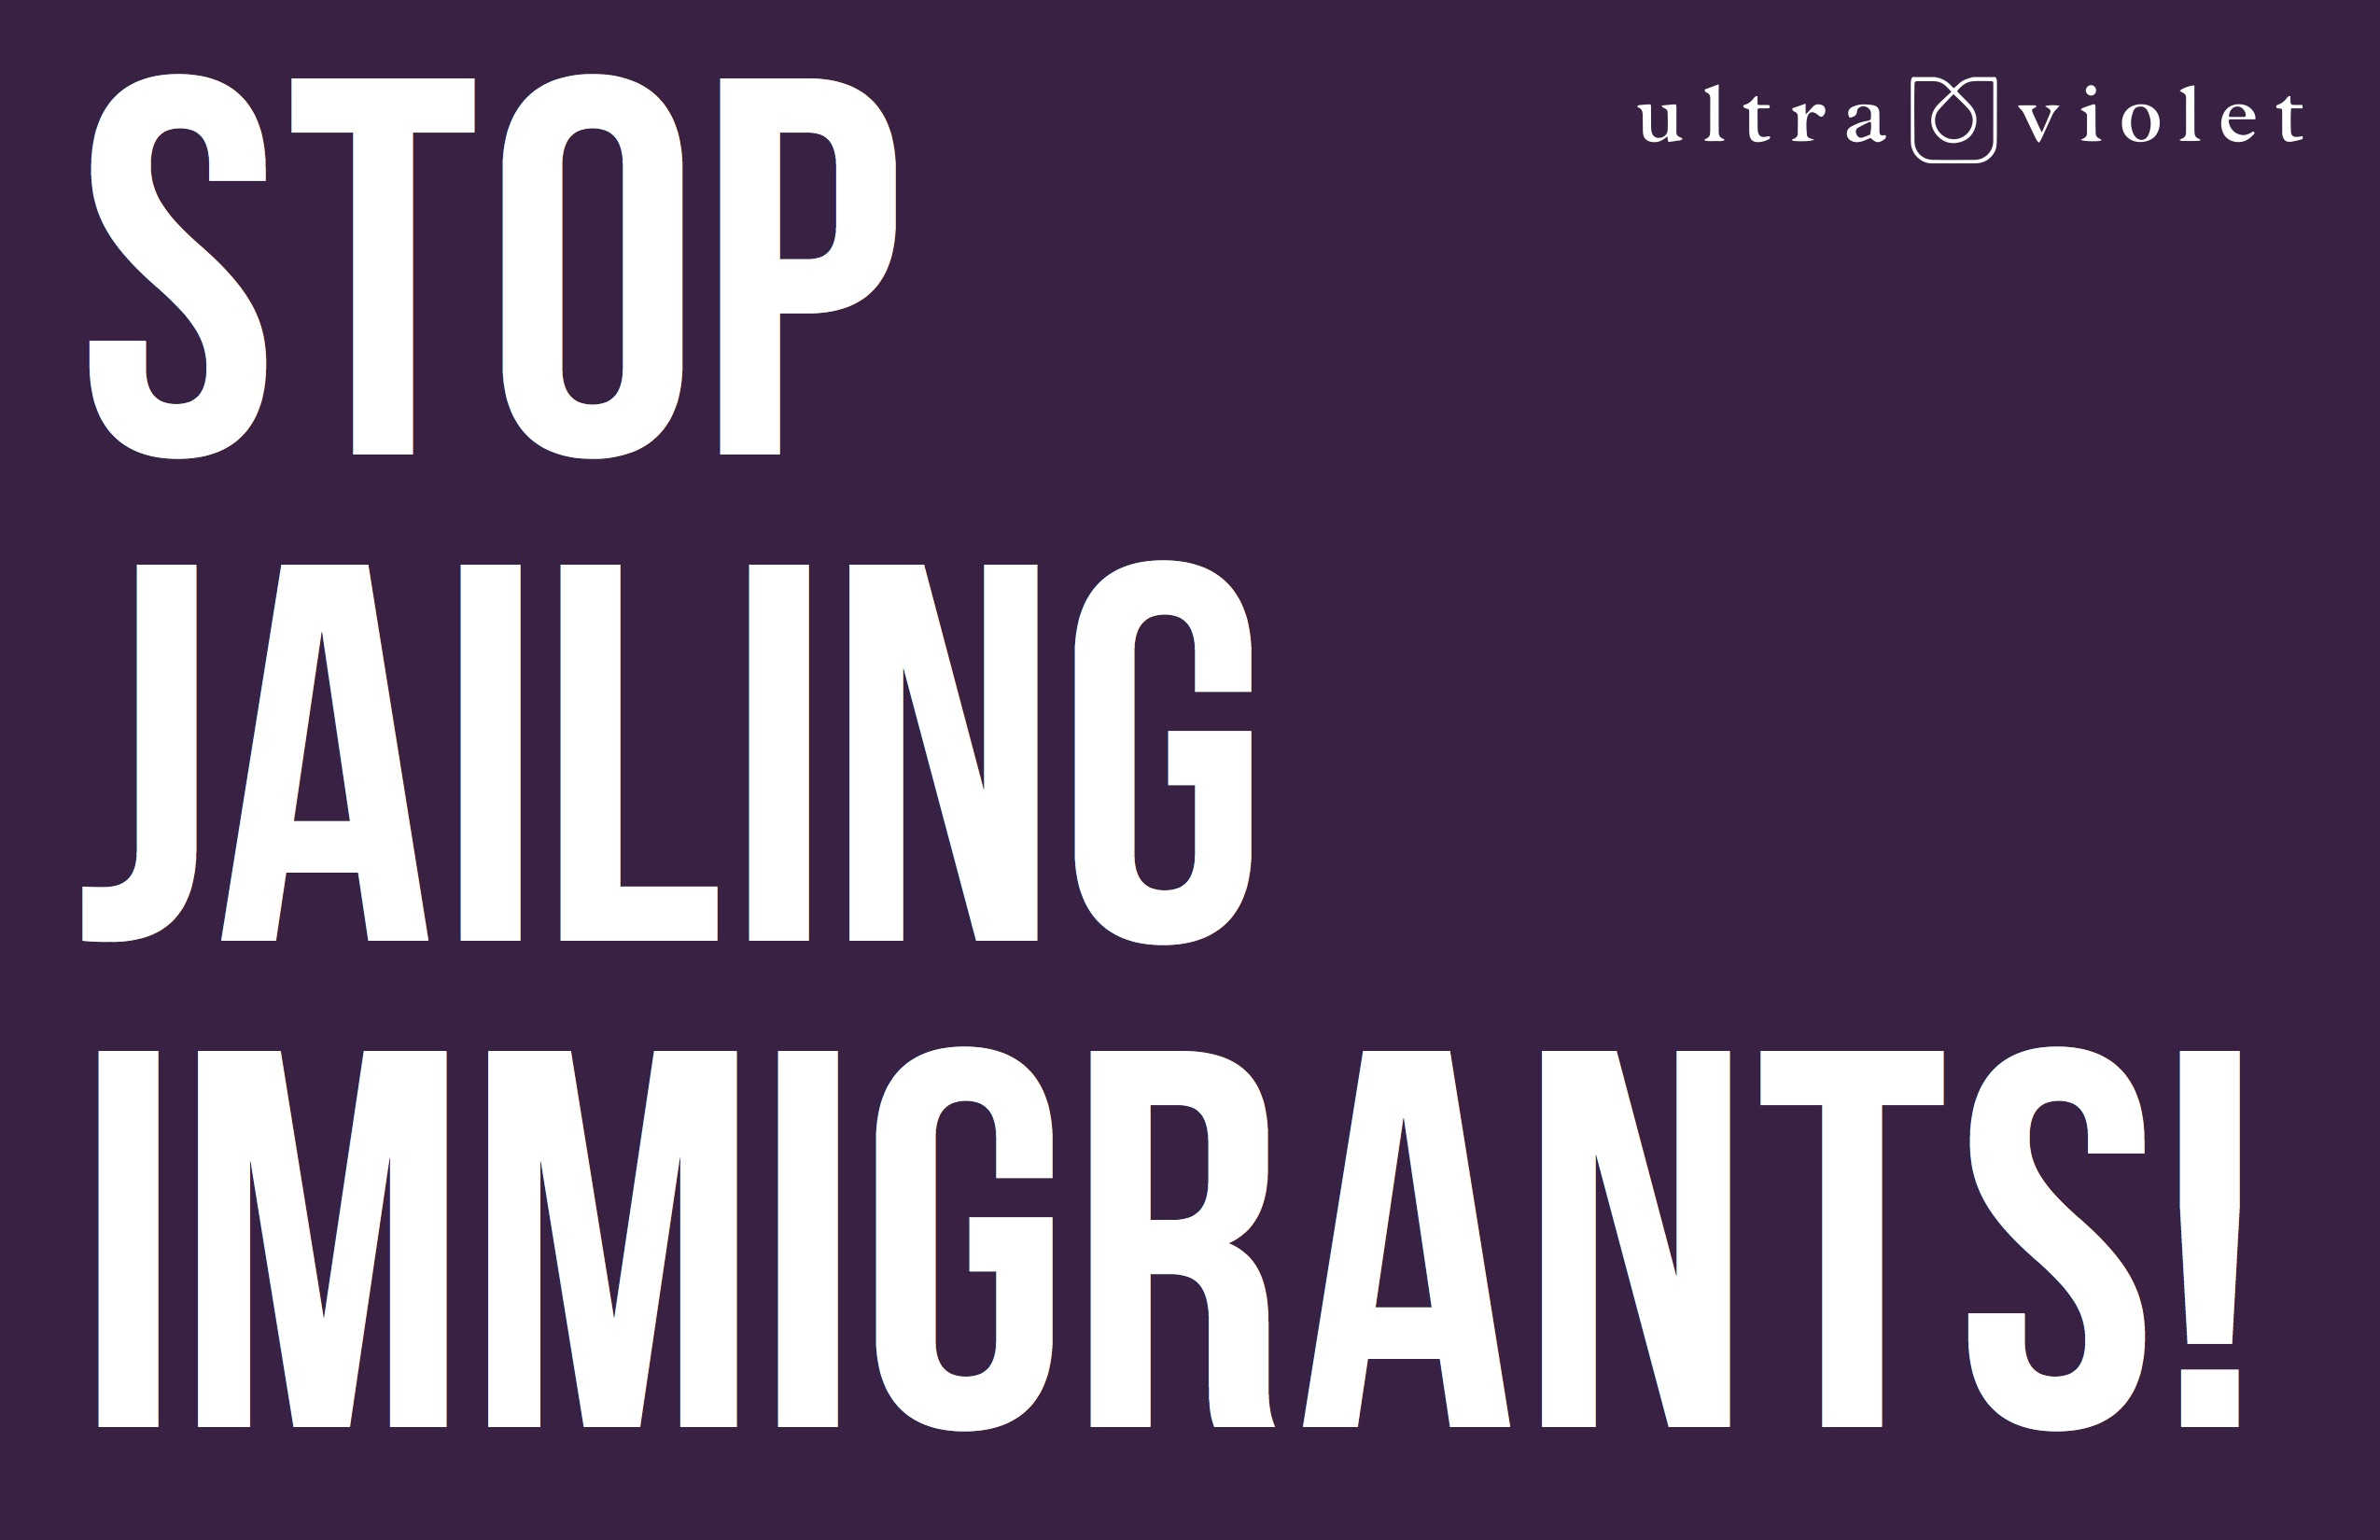 Stop Jailing Immigrants! Rally sign